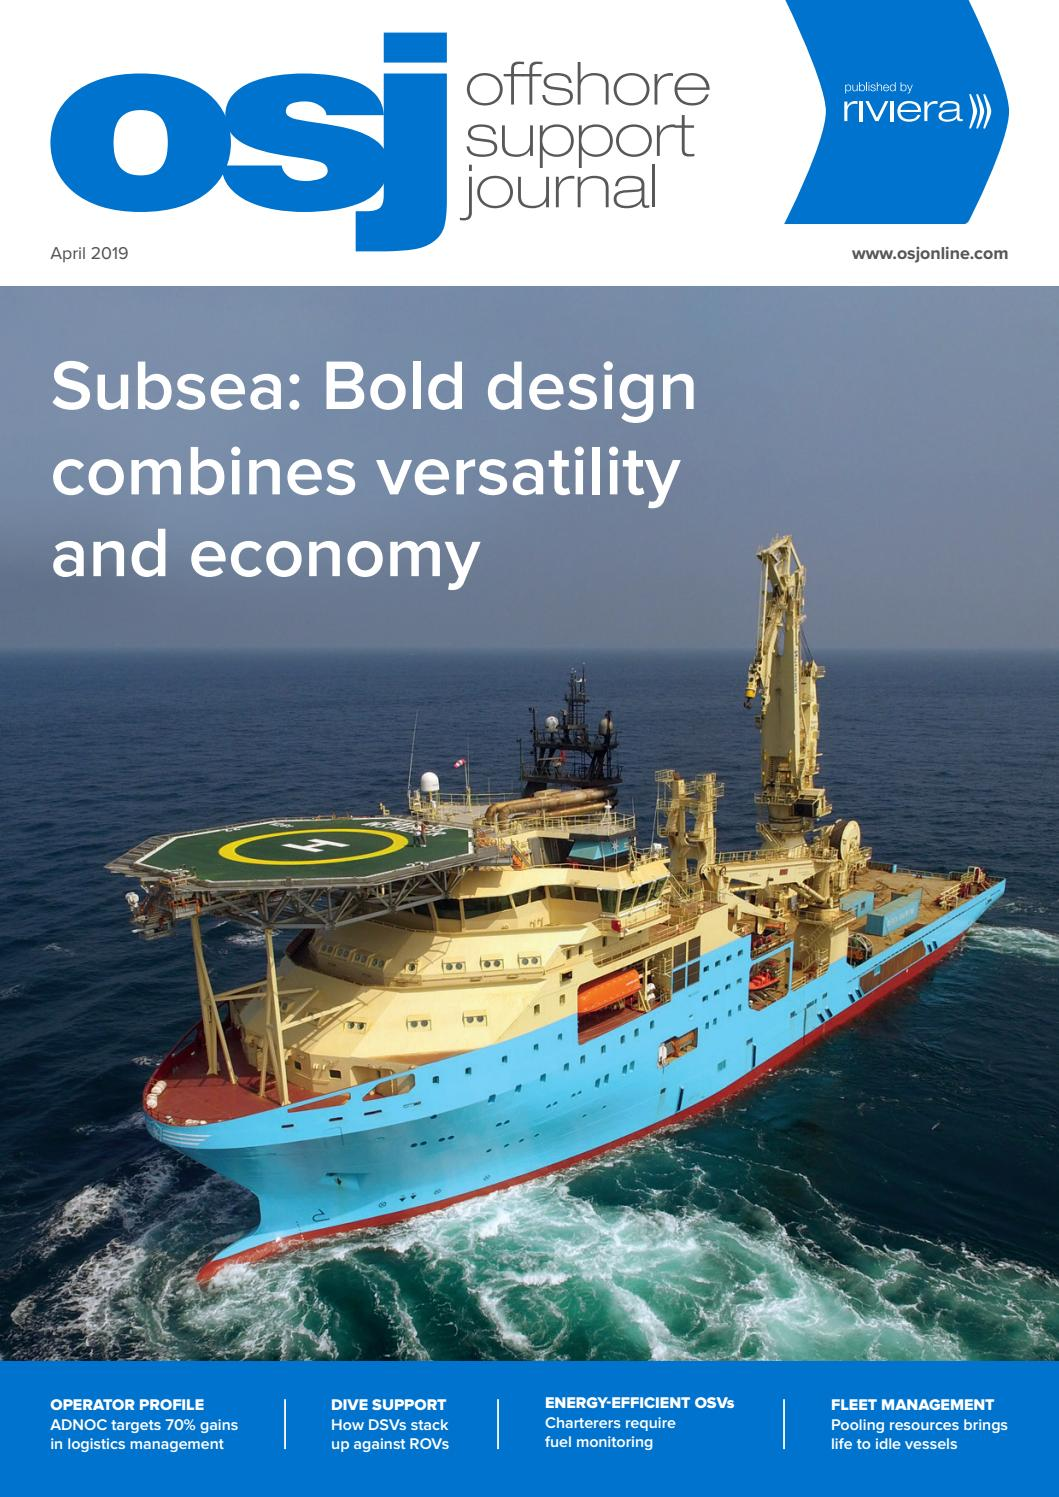 Offshore Support Journal April 2019 by rivieramaritimemedia